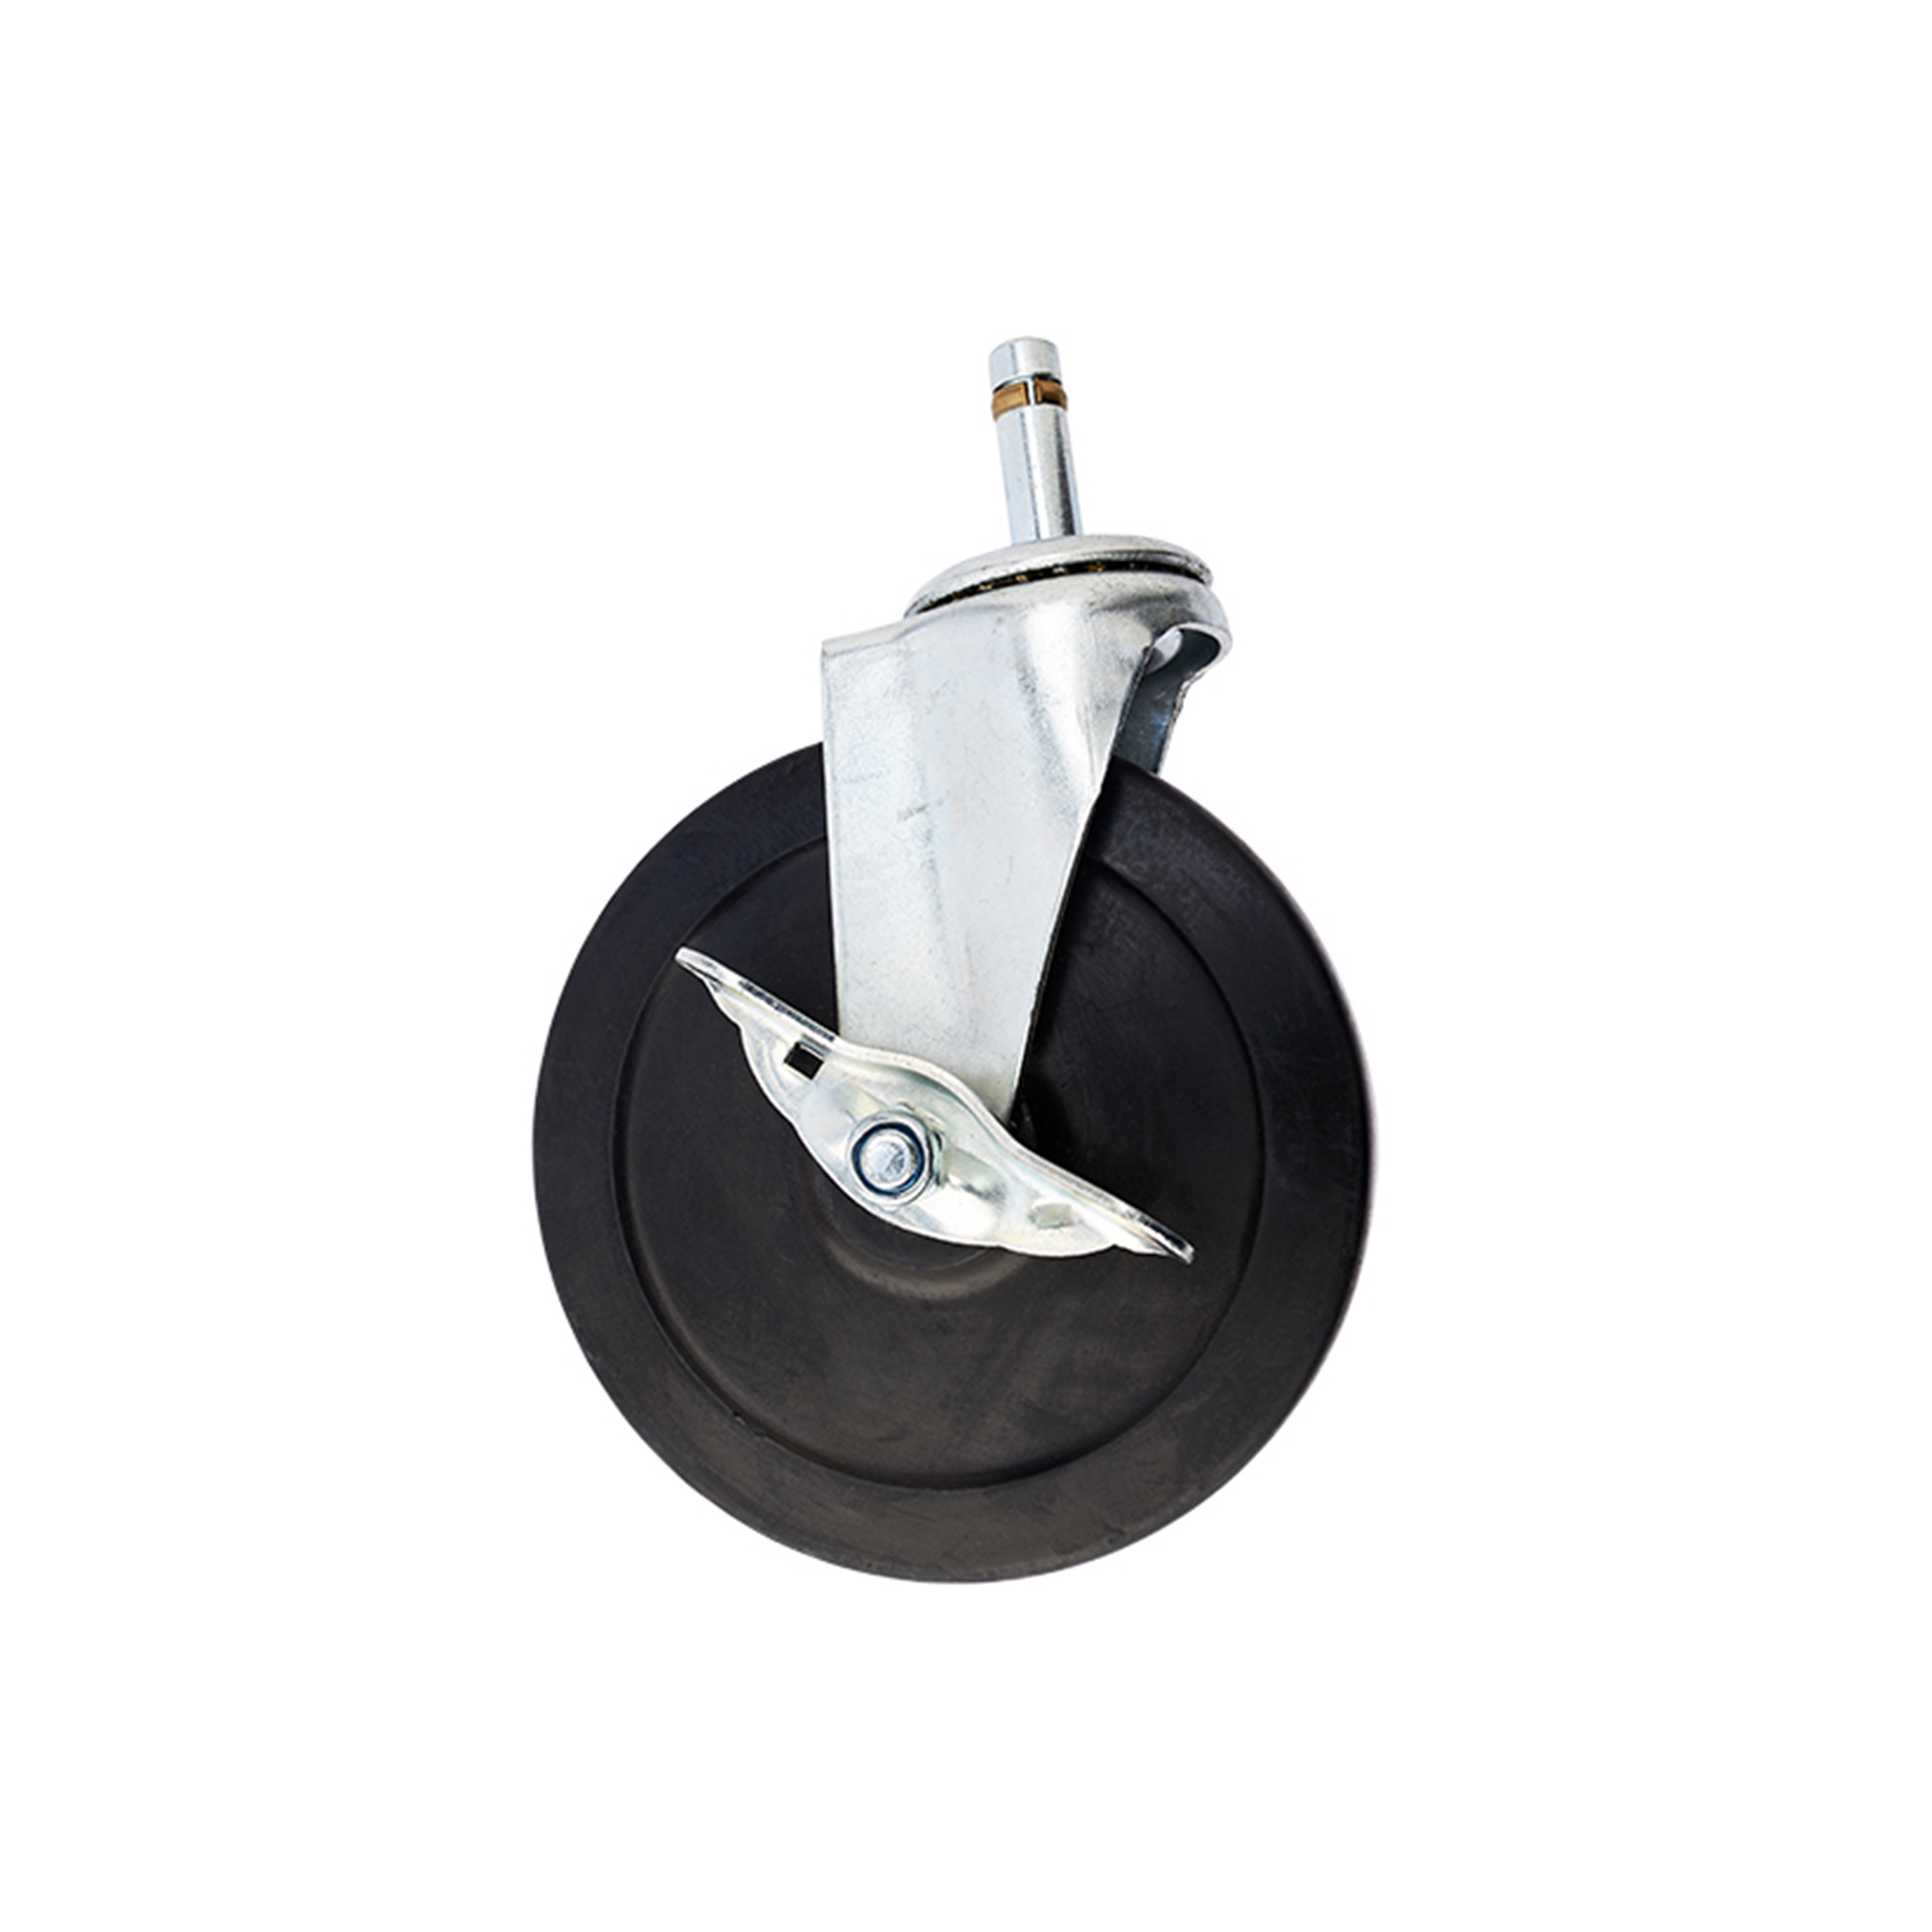 Replacement Caster for Panel Lift TP88200